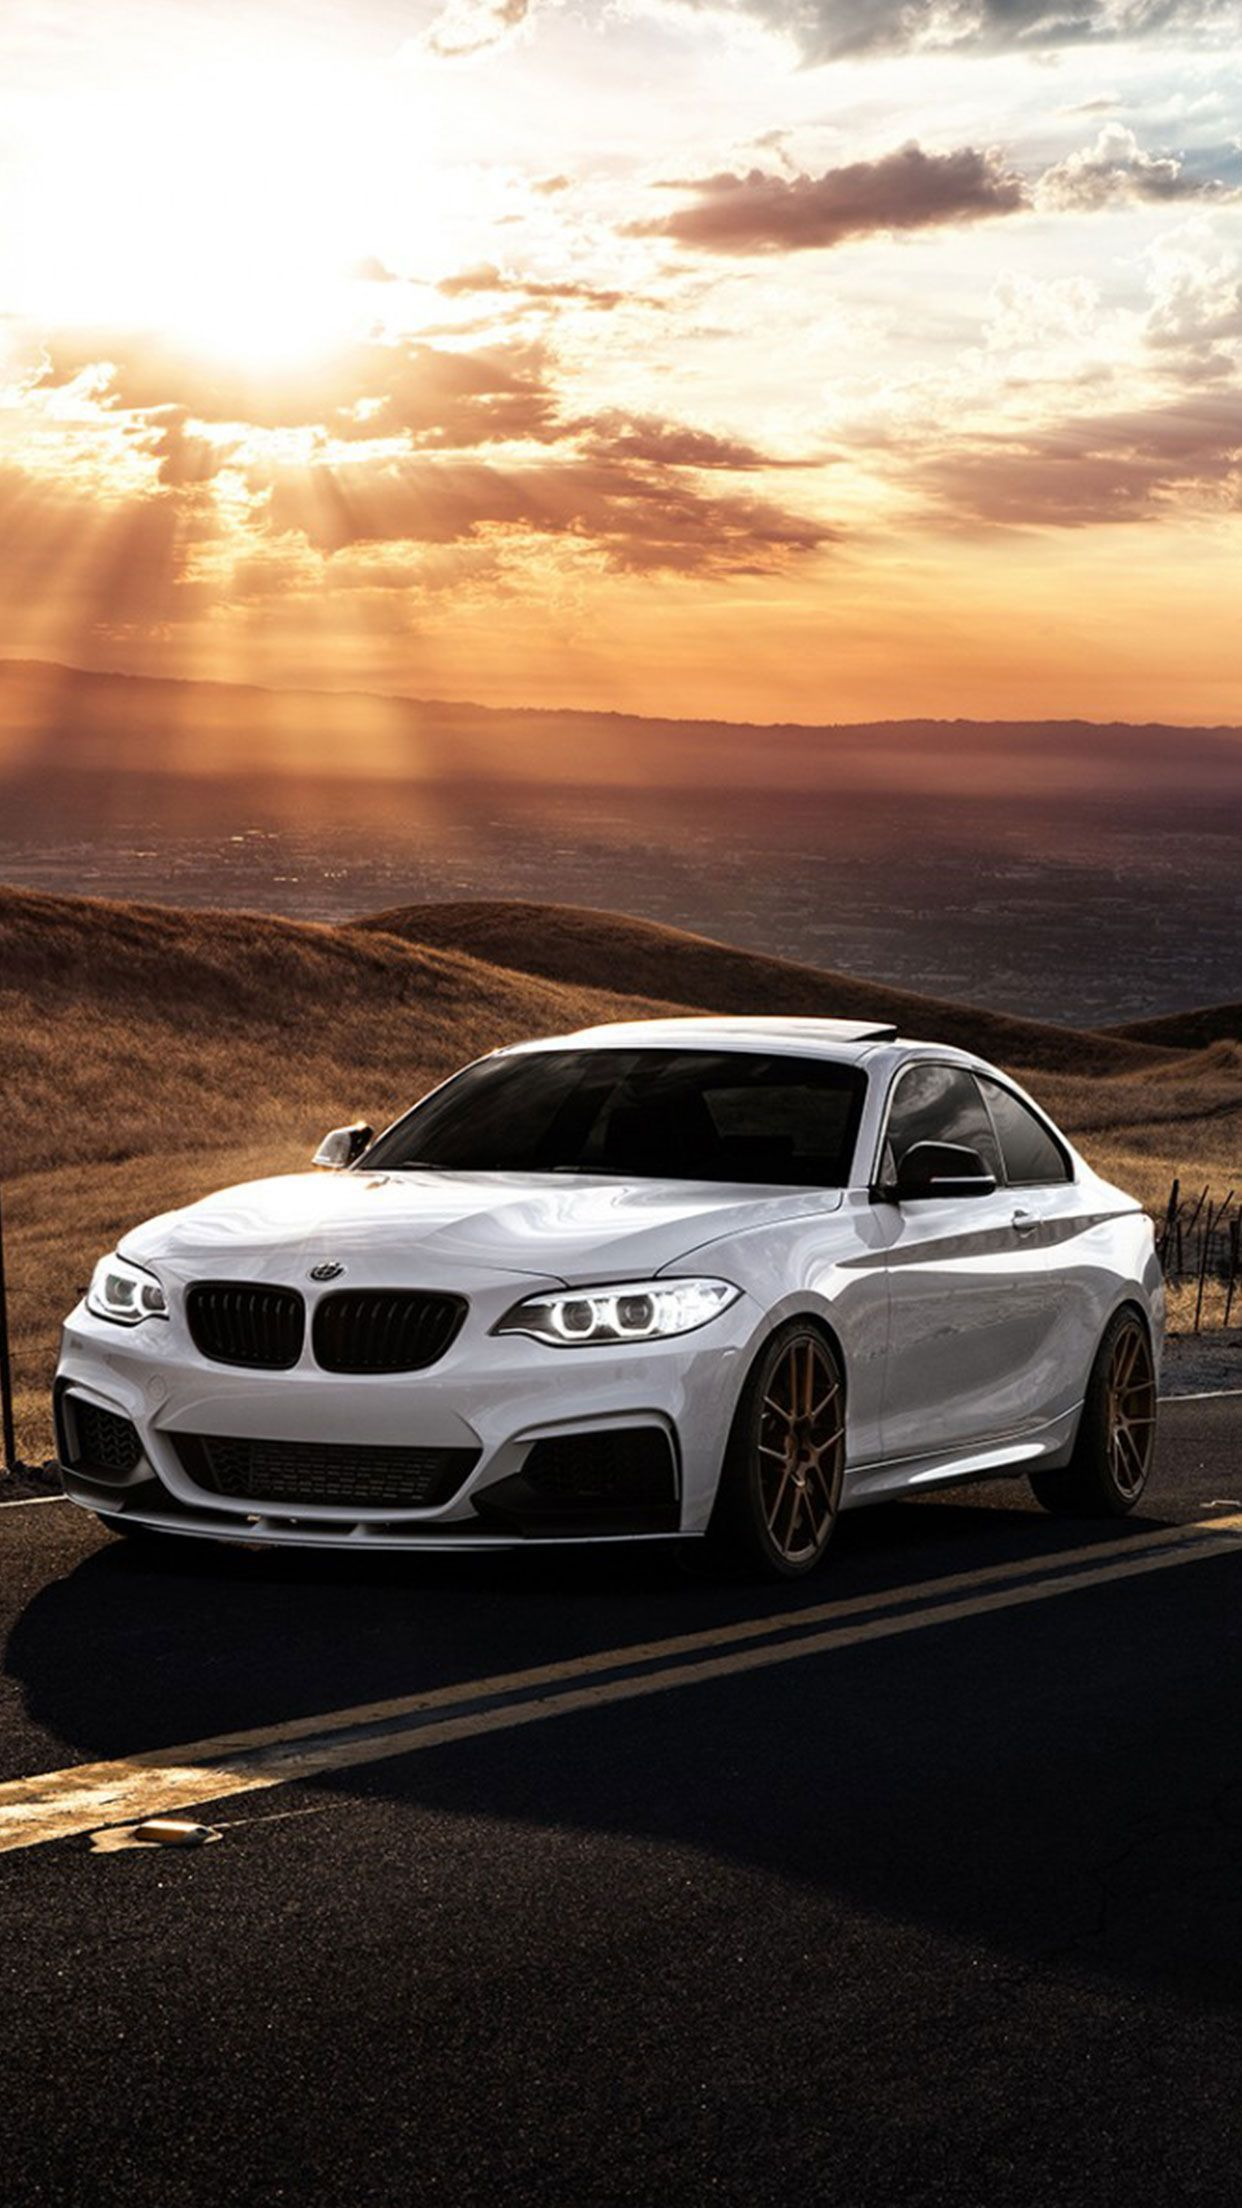 Iphone X Car Wallpaper 4k 3D Wallpapers Bmw wallpapers